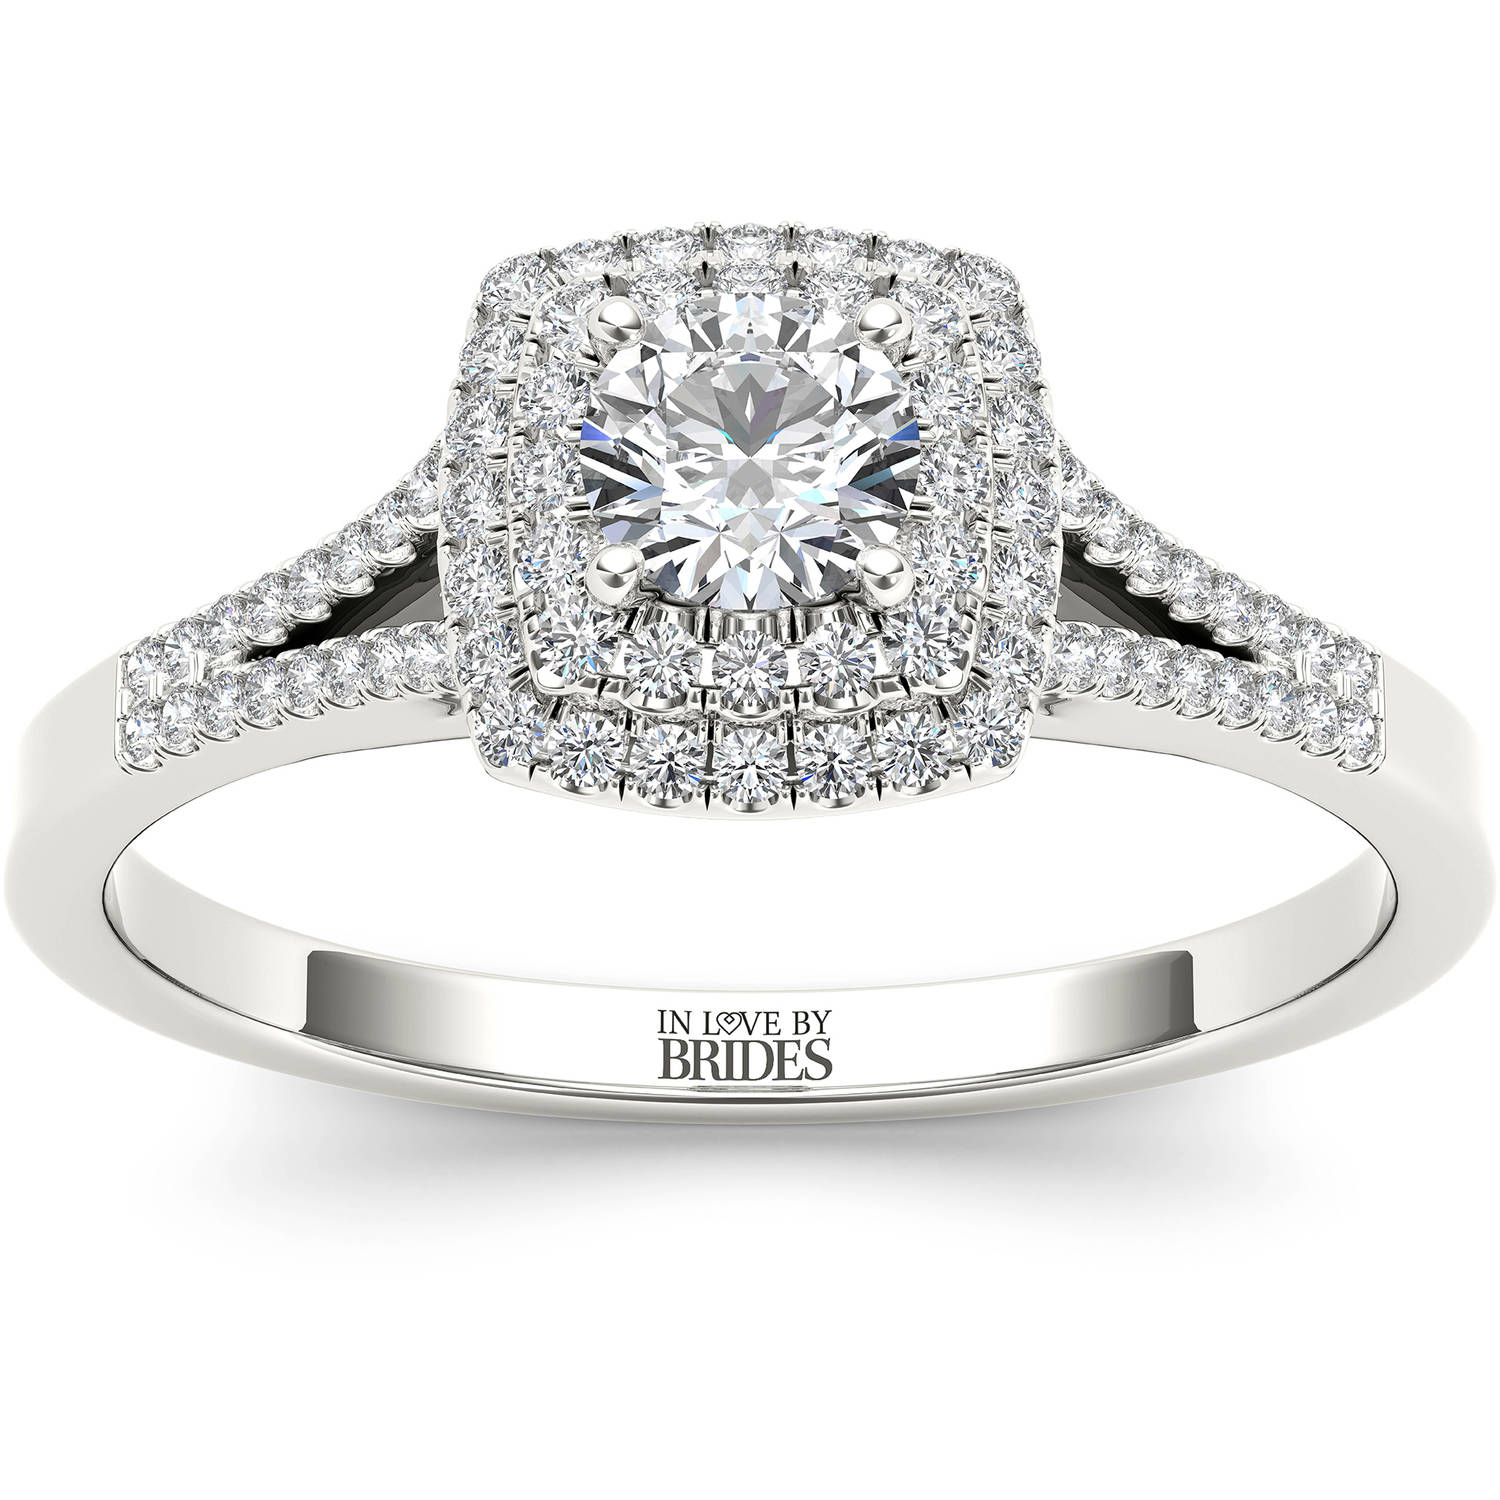 IN LOVE BY BRIDES 1/2 Carat T.W. Certified Diamond Double Halo 14kt White Gold Engagement Ring